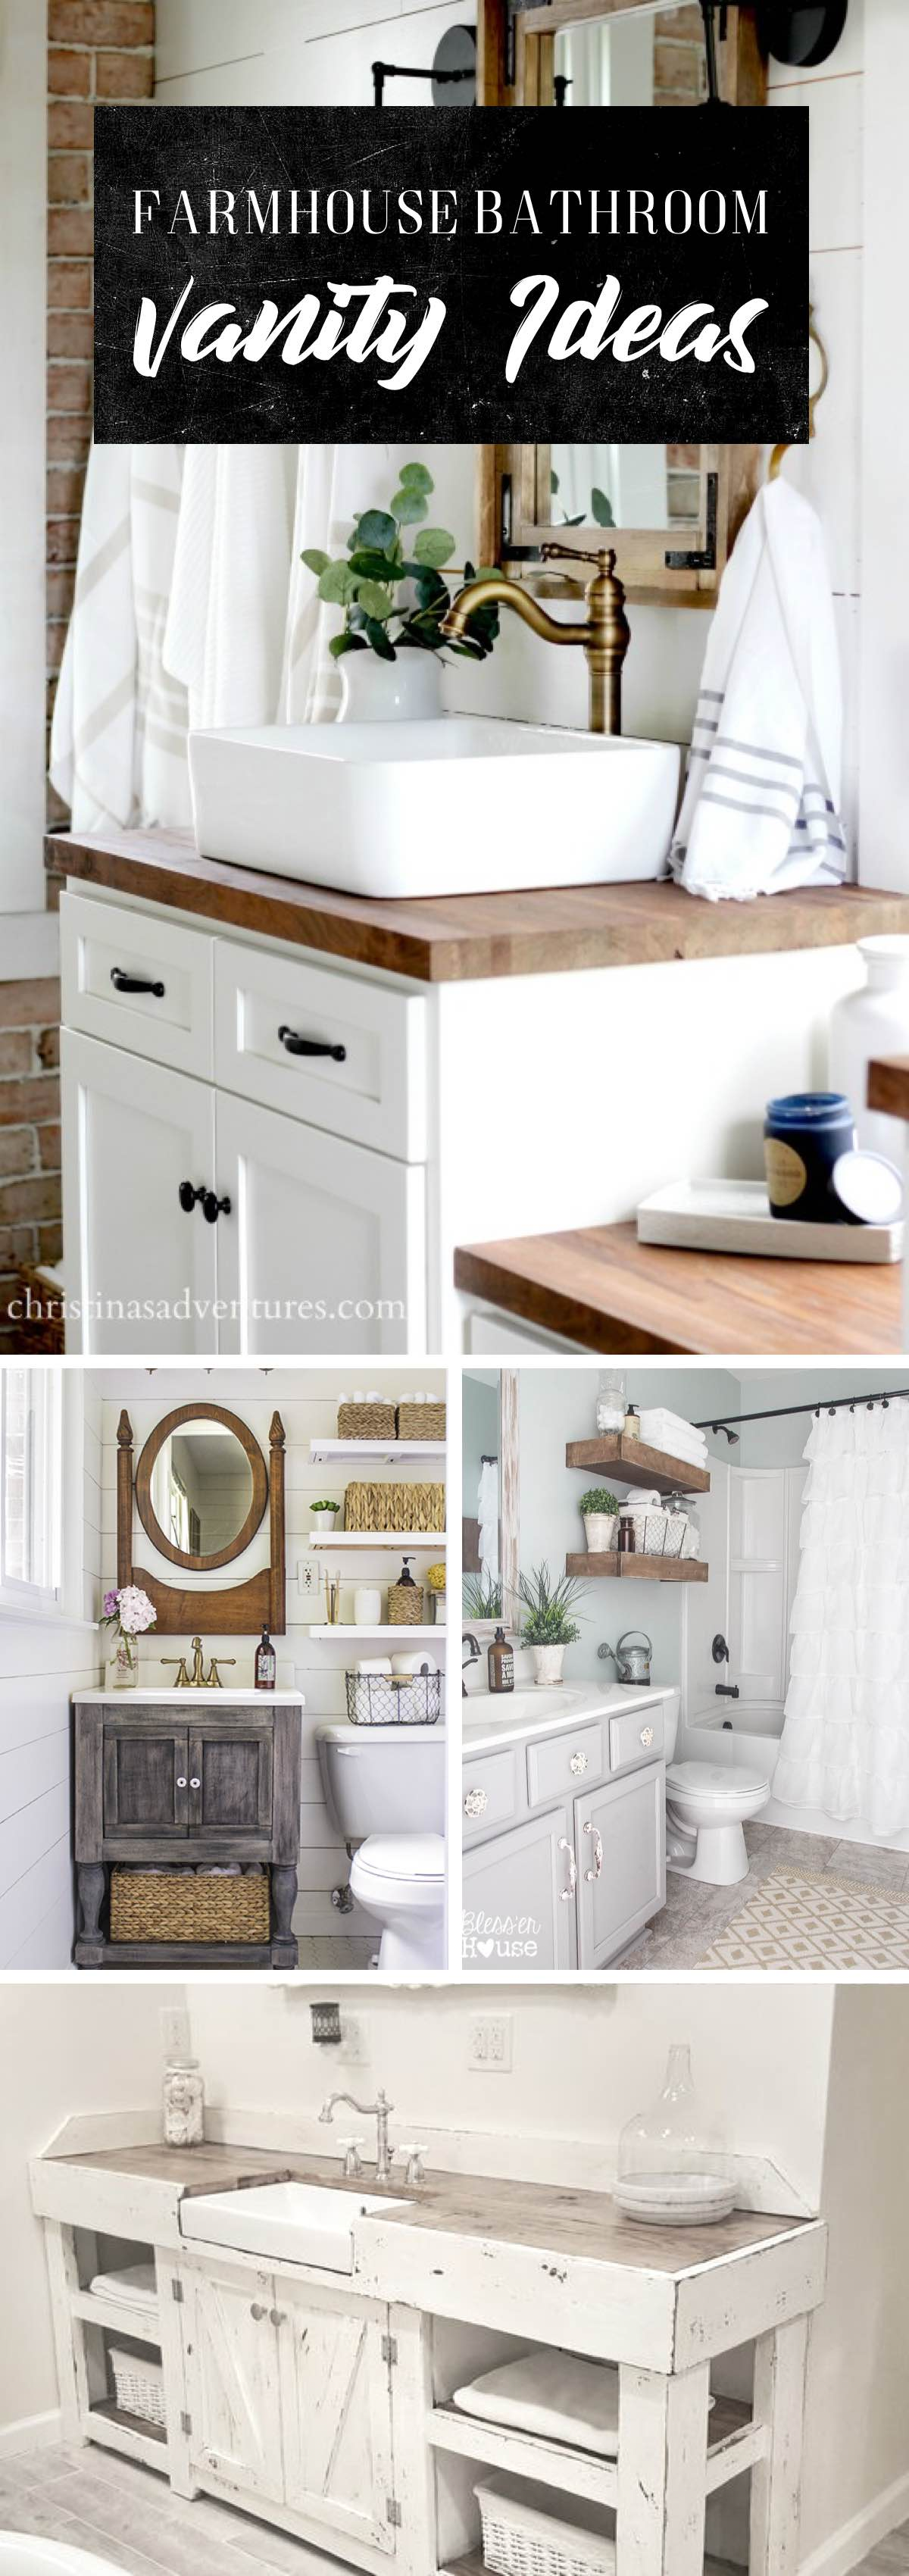 19 Stylish Farmhouse Bathroom Vanity Ideas Getting You All Set For The Day